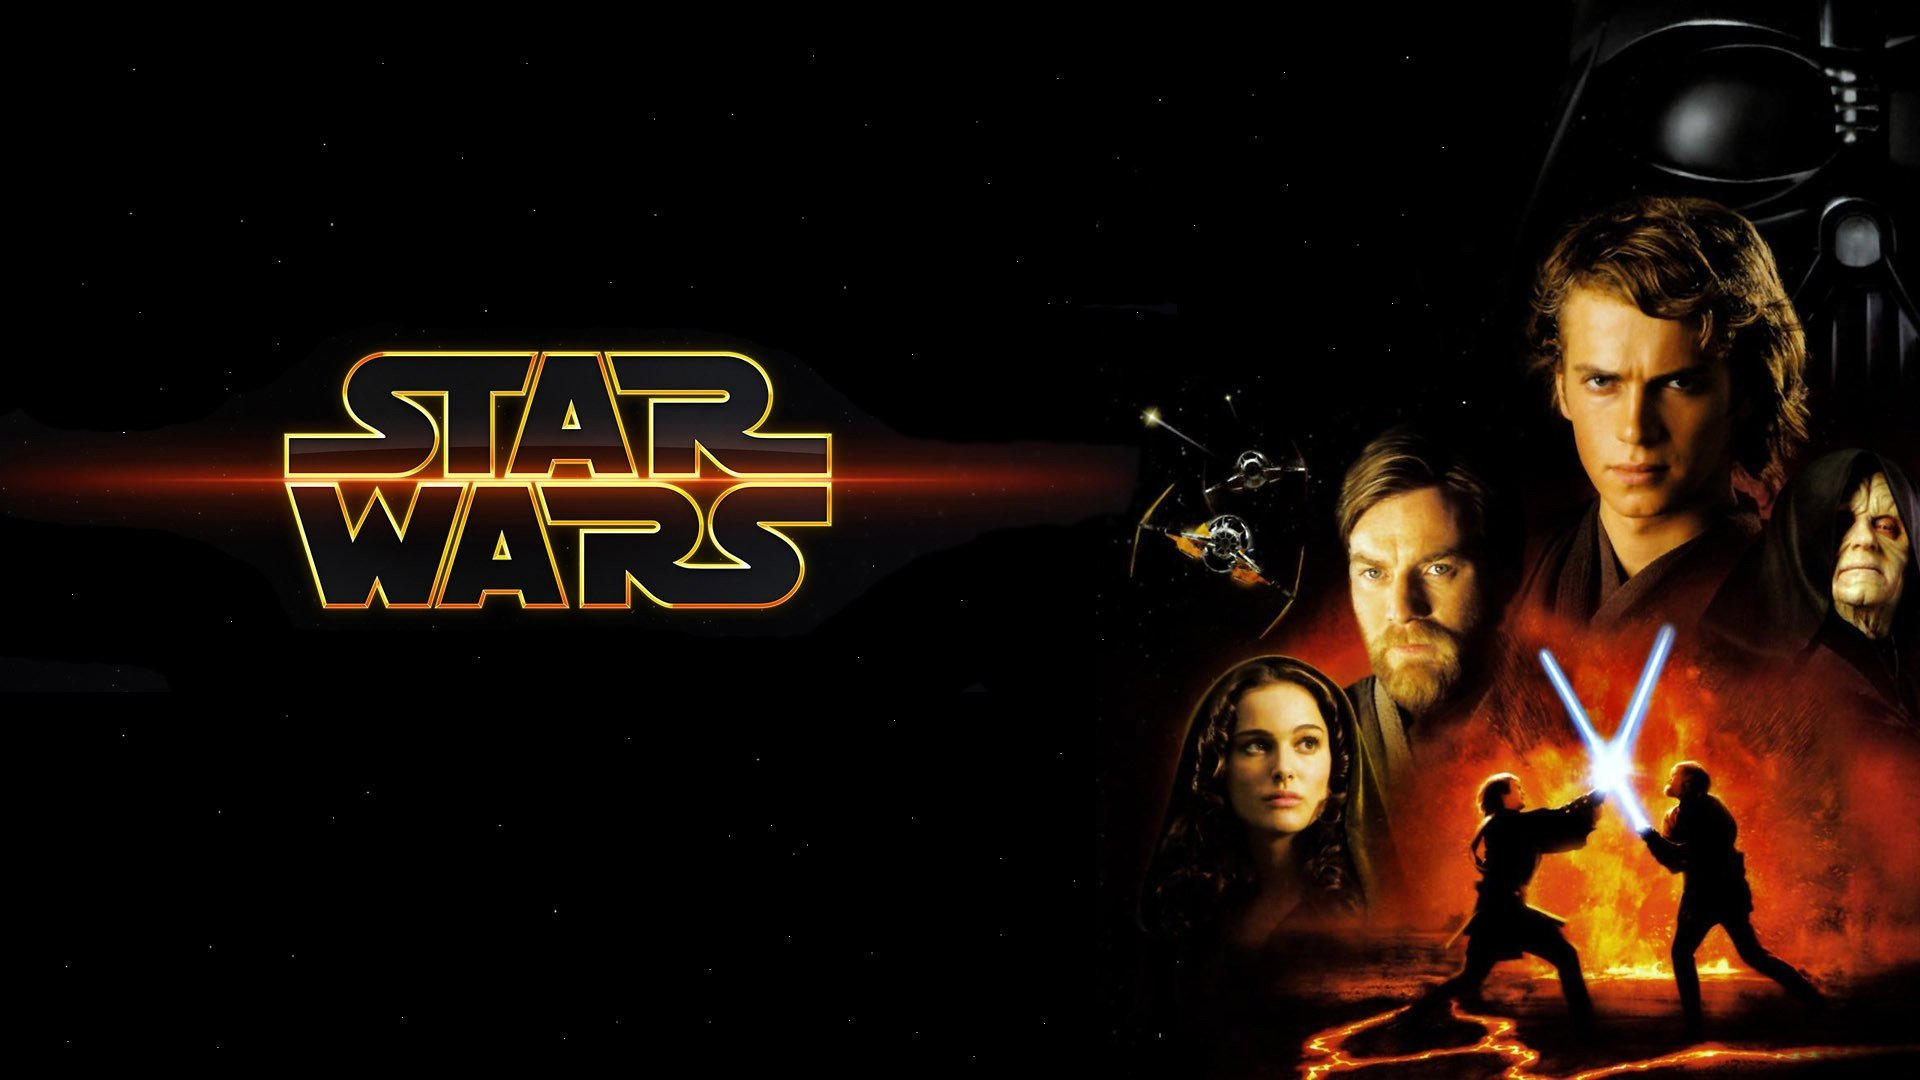 Movie - Star Wars Episode III: Revenge of the Sith  Padmé Amidala Darth Vader Anakin Skywalker Obi-Wan Kenobi Wallpaper